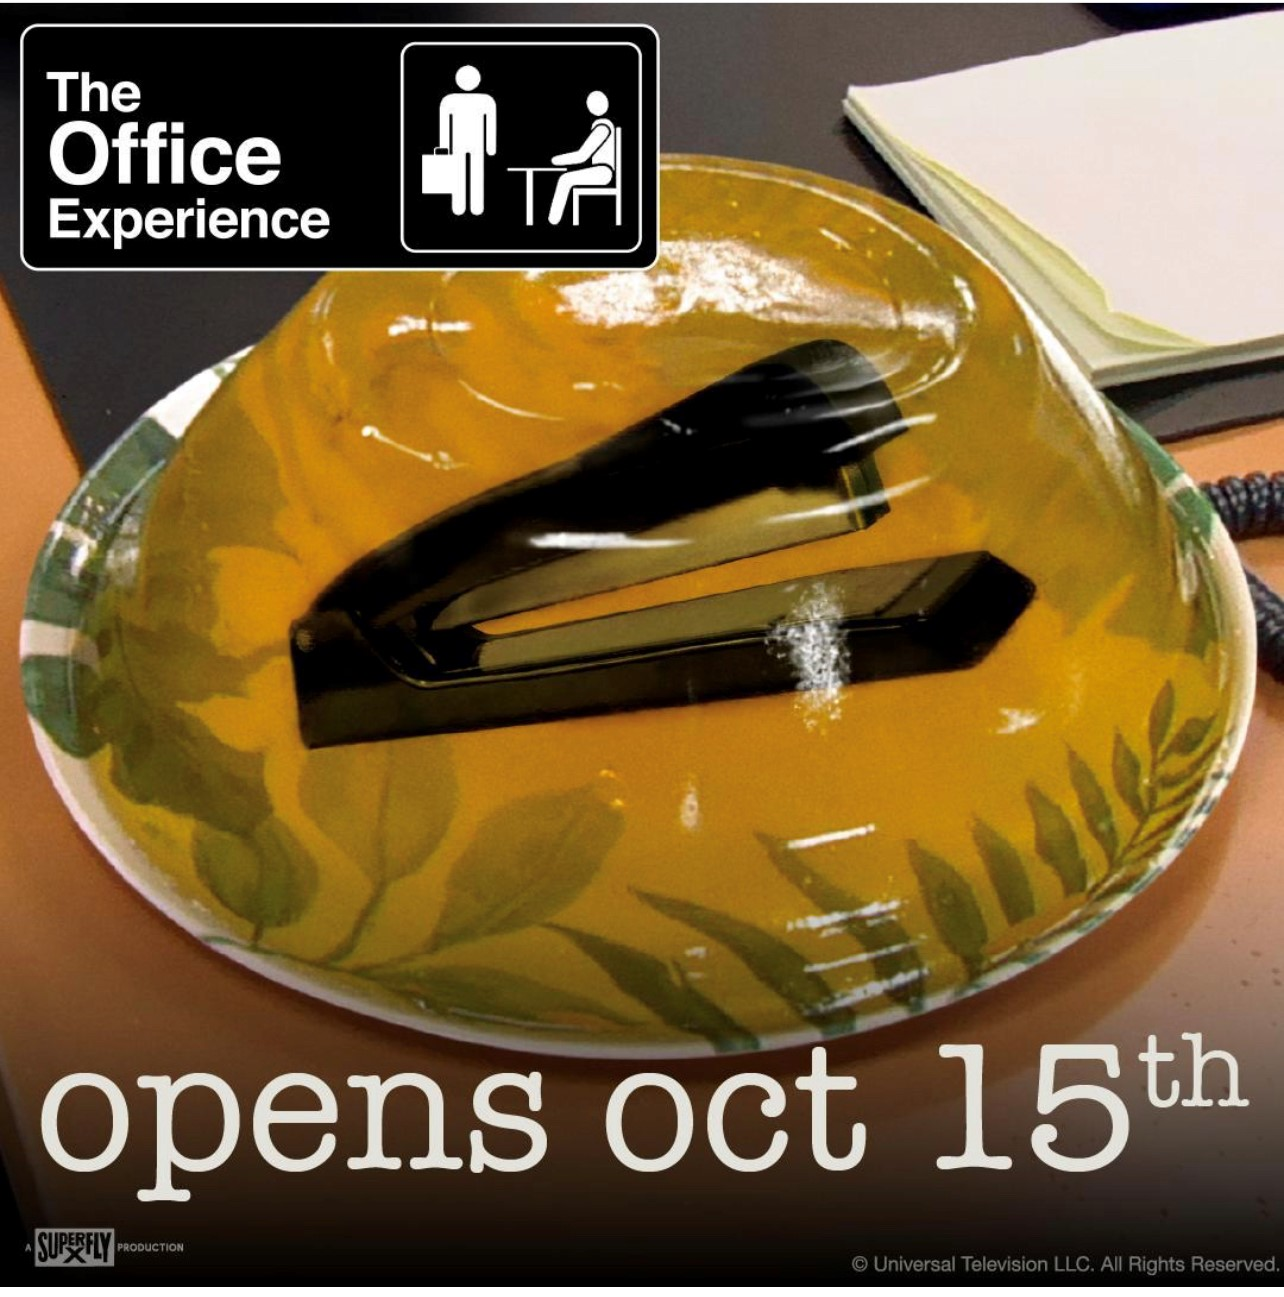 Yellow Jello mold on a plate with stapler inside from the TV show The Office.